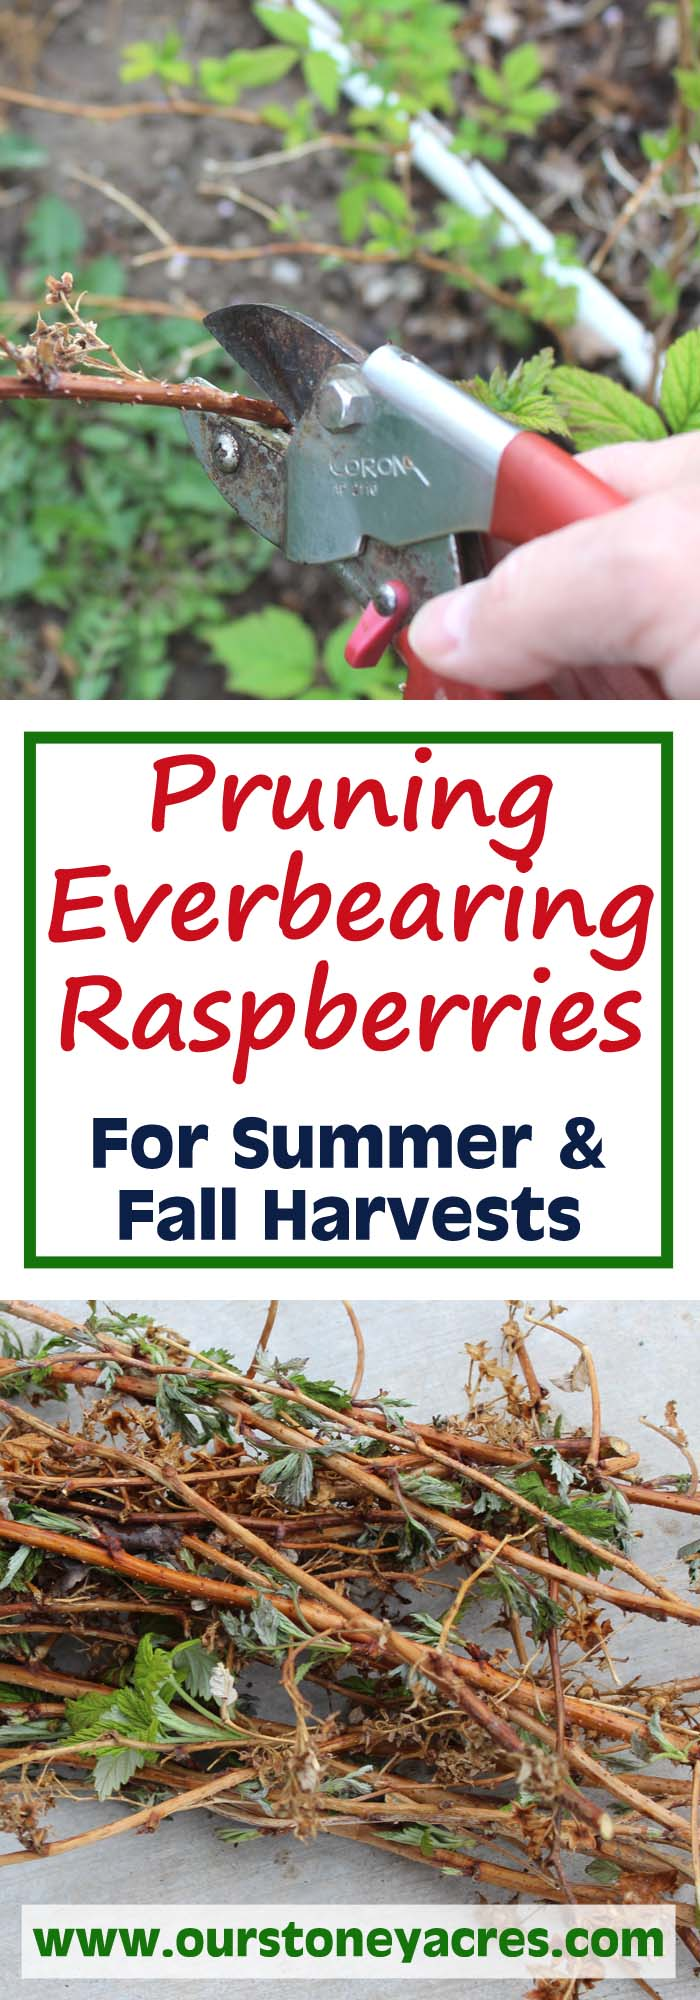 Pruning Everbearing Raspberries